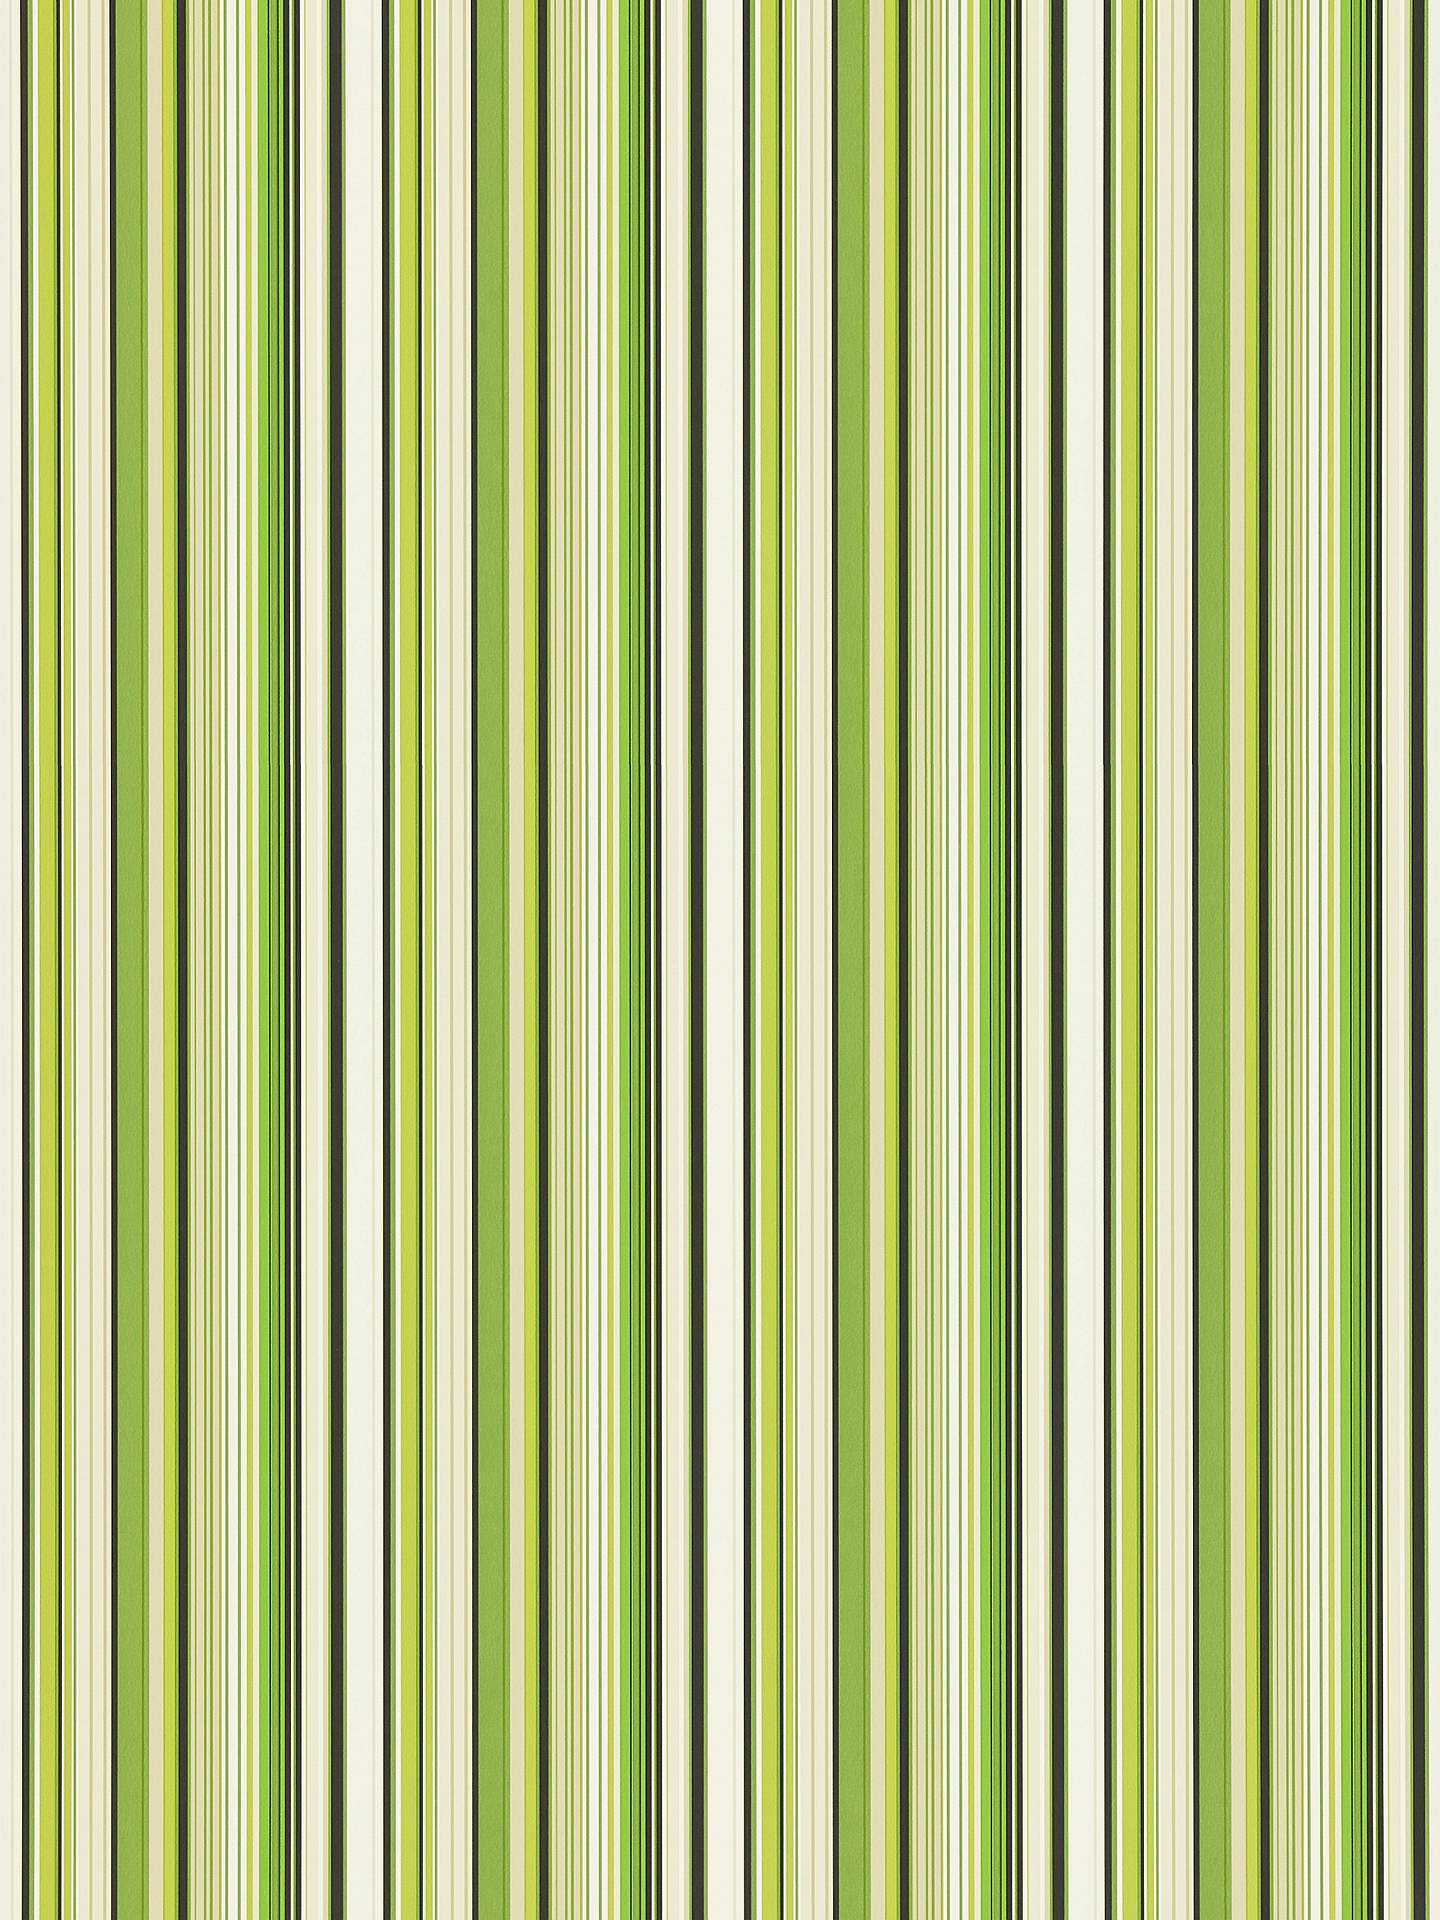 Buy Scion Strata Wallpaper, 110222 Online at johnlewis.com